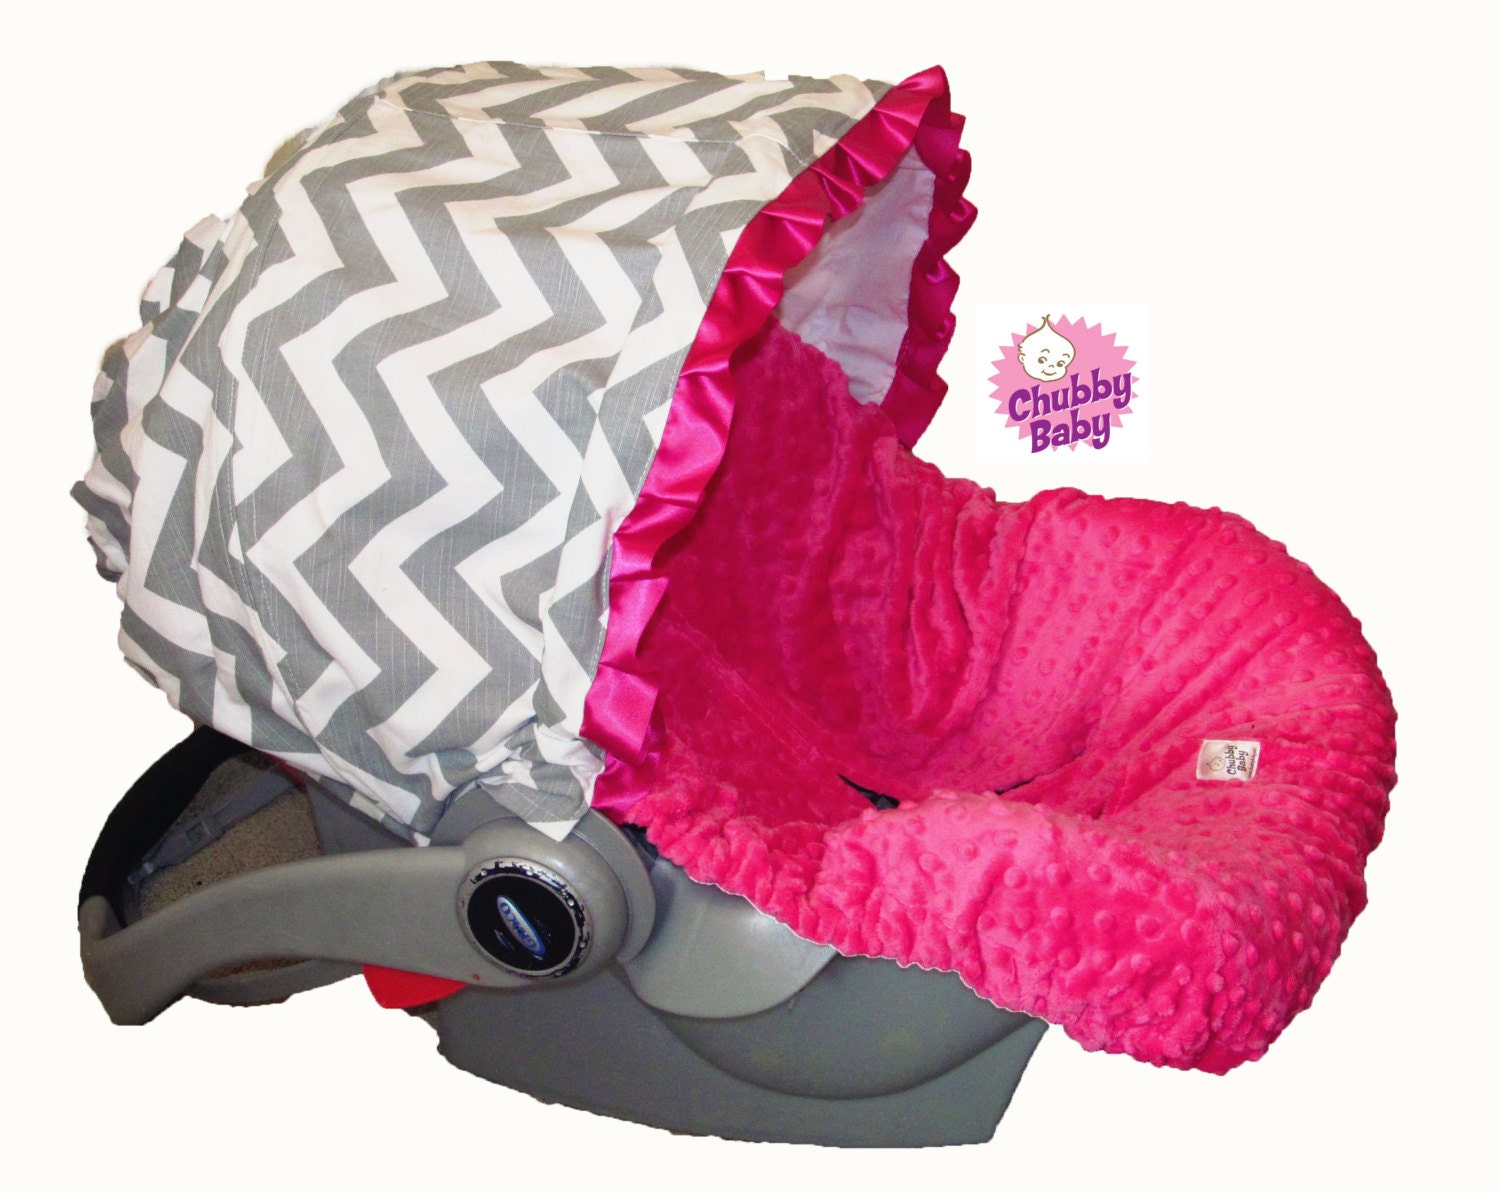 free shipping infant car seat cover baby car seat cover grey. Black Bedroom Furniture Sets. Home Design Ideas